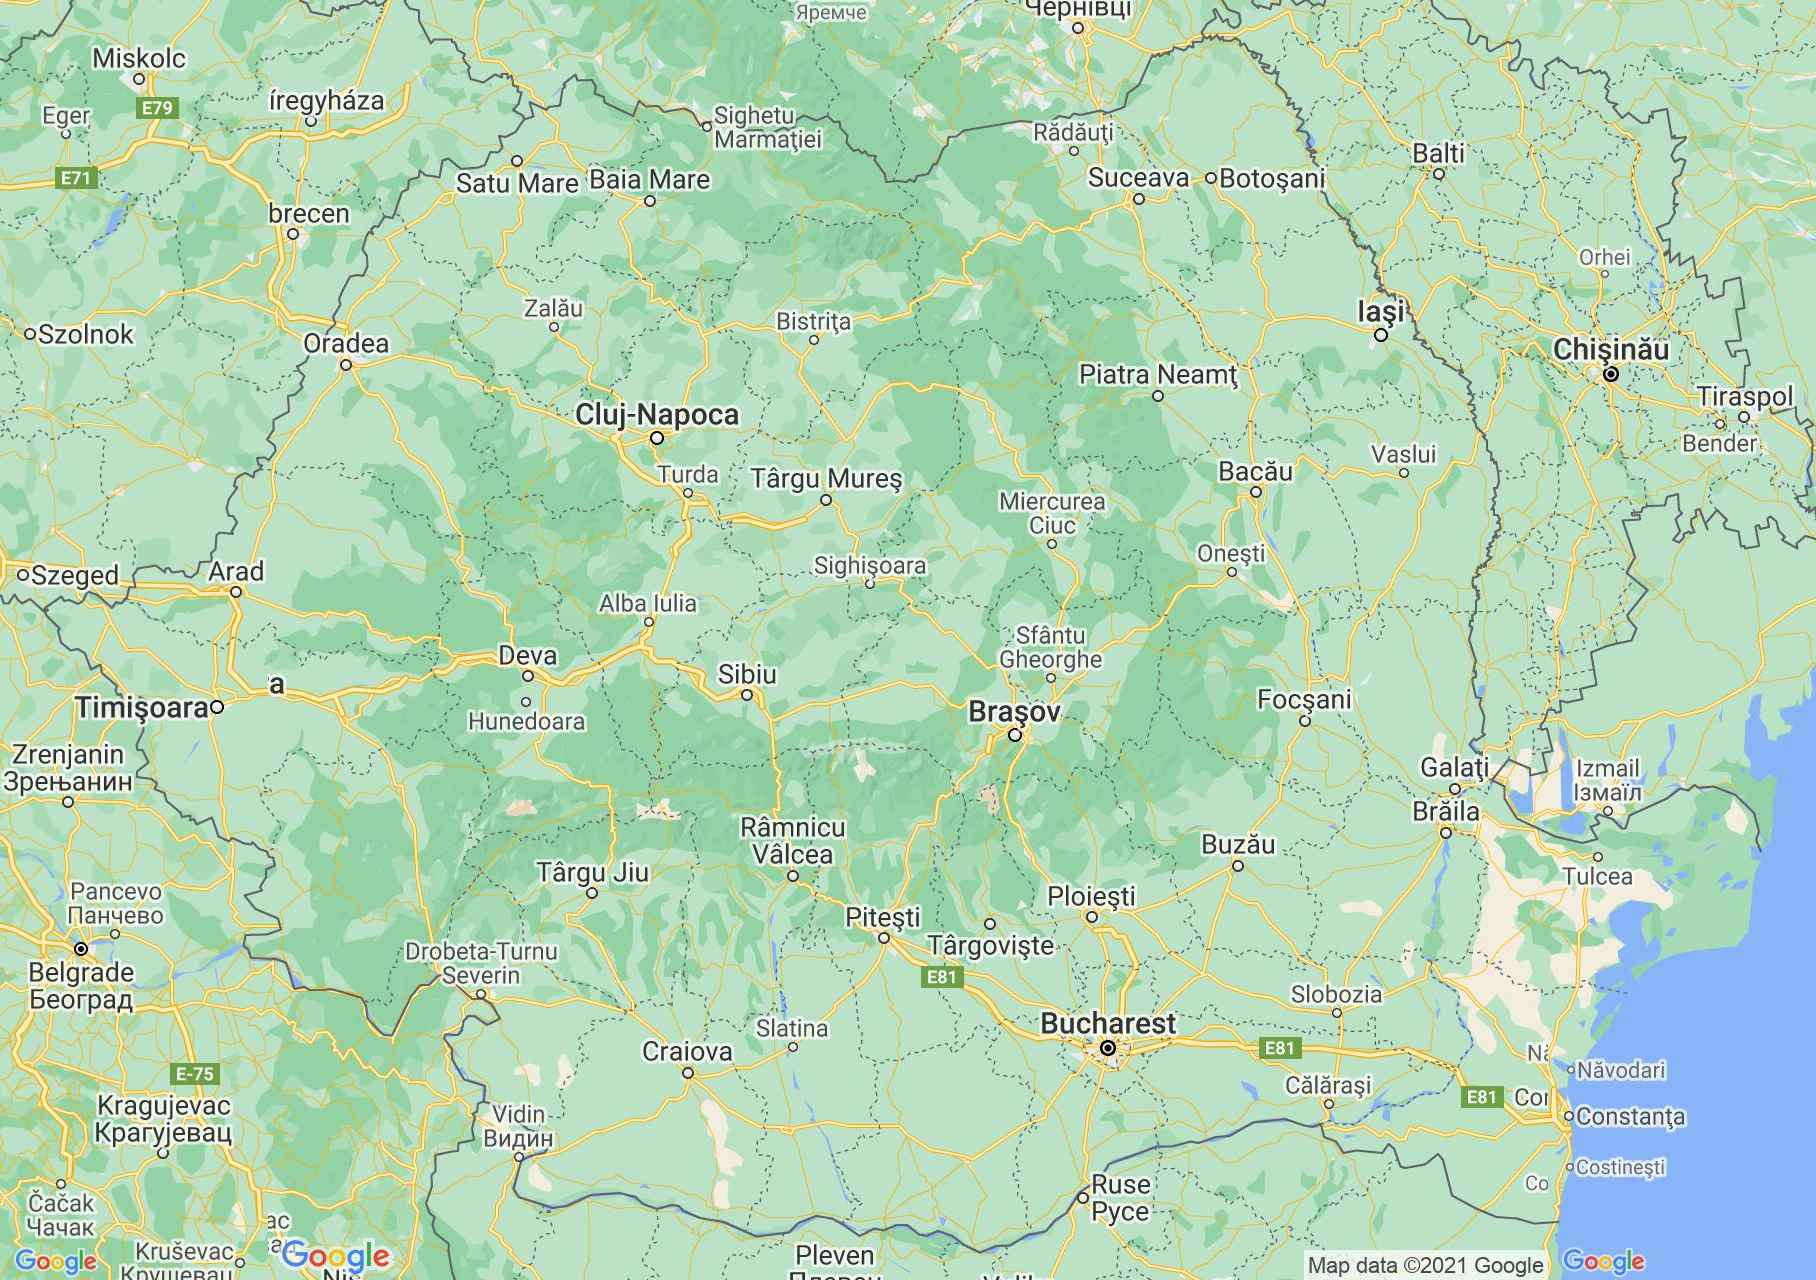 Interactive tourist map of Romania on Google Map